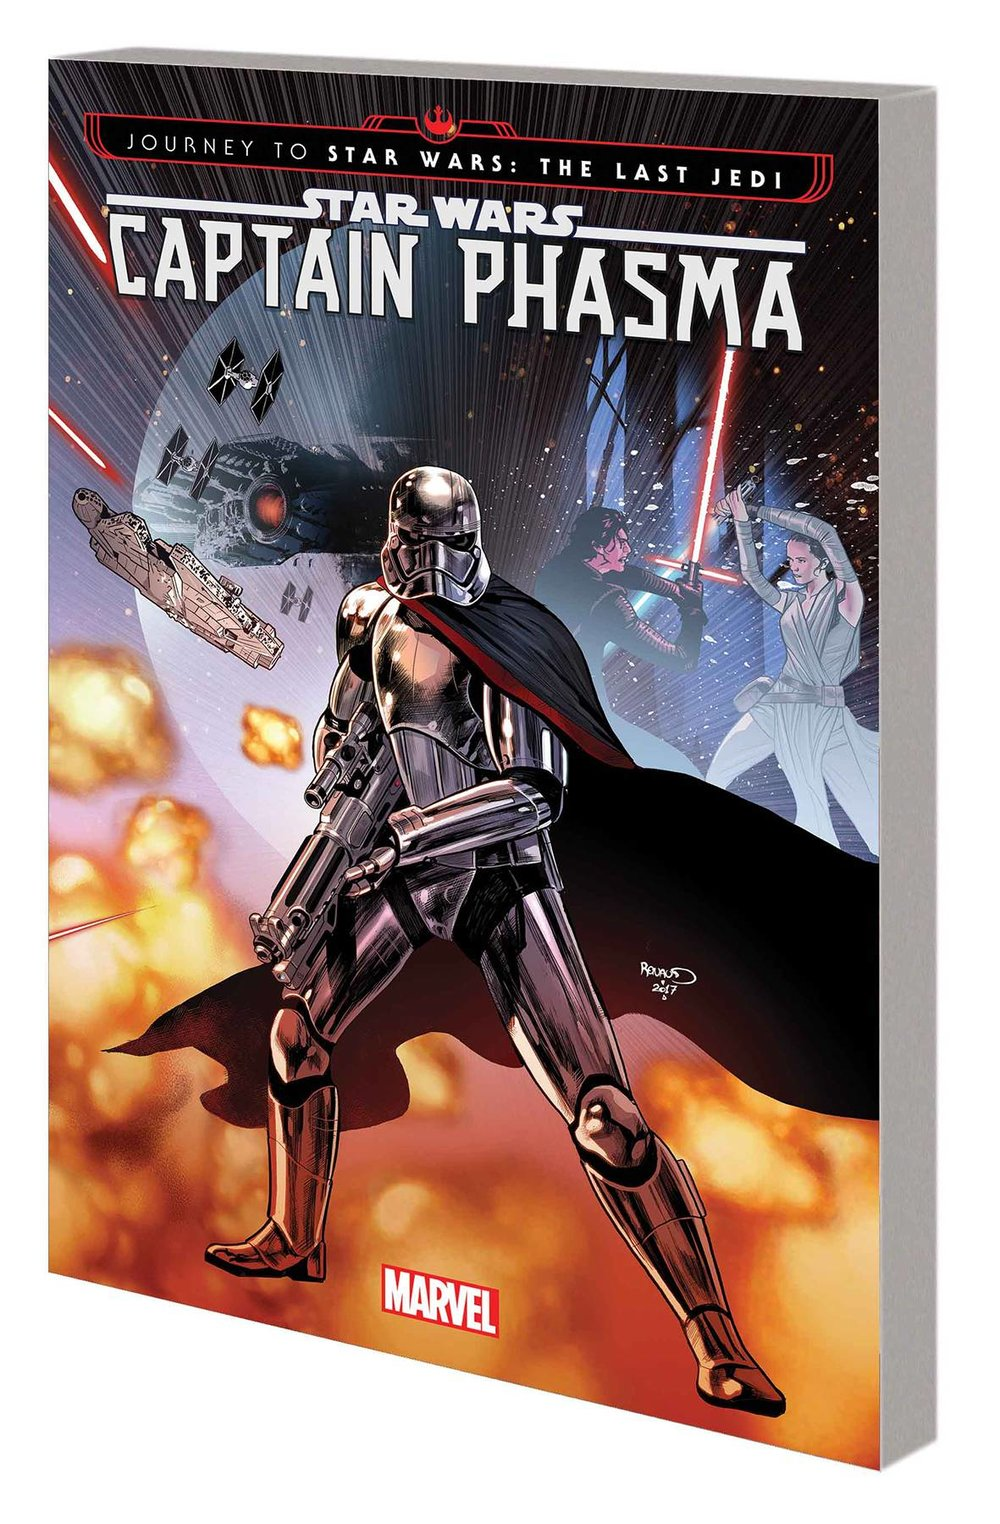 JOURNEY STAR WARS LAST JEDI CAPT PHASMA TP.jpg